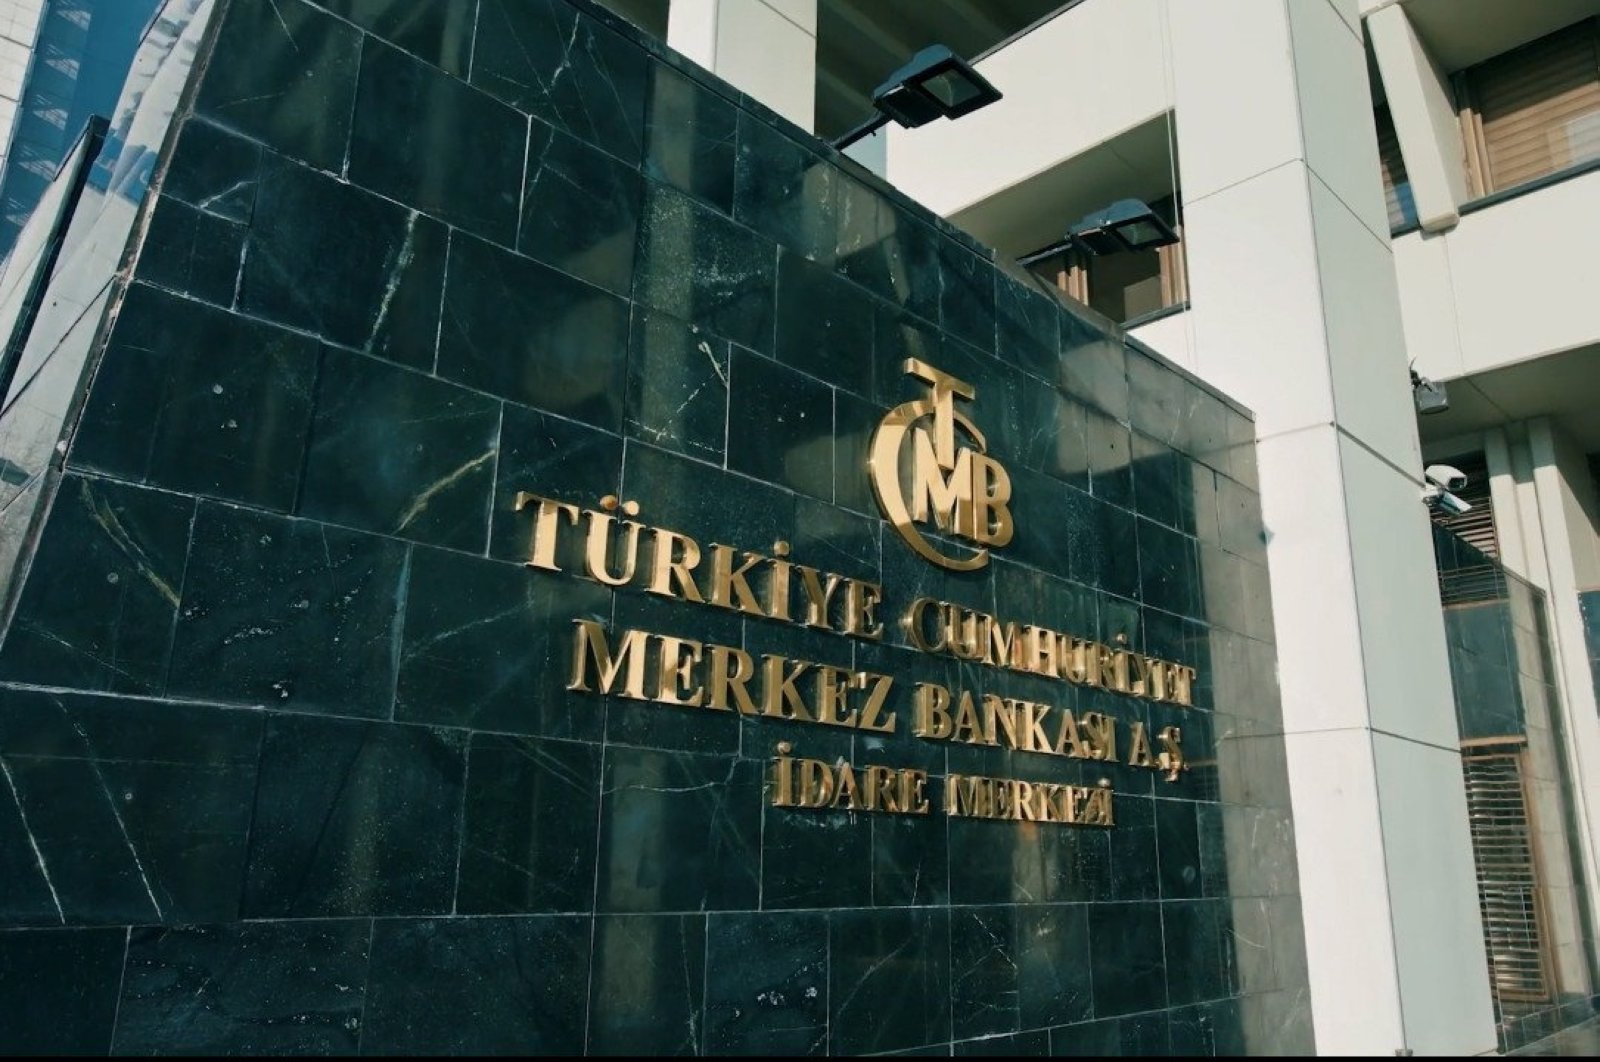 The Central Bank of the Republic of Turkey headquarters in Ankara, March 26, 2020. (IHA Photo)